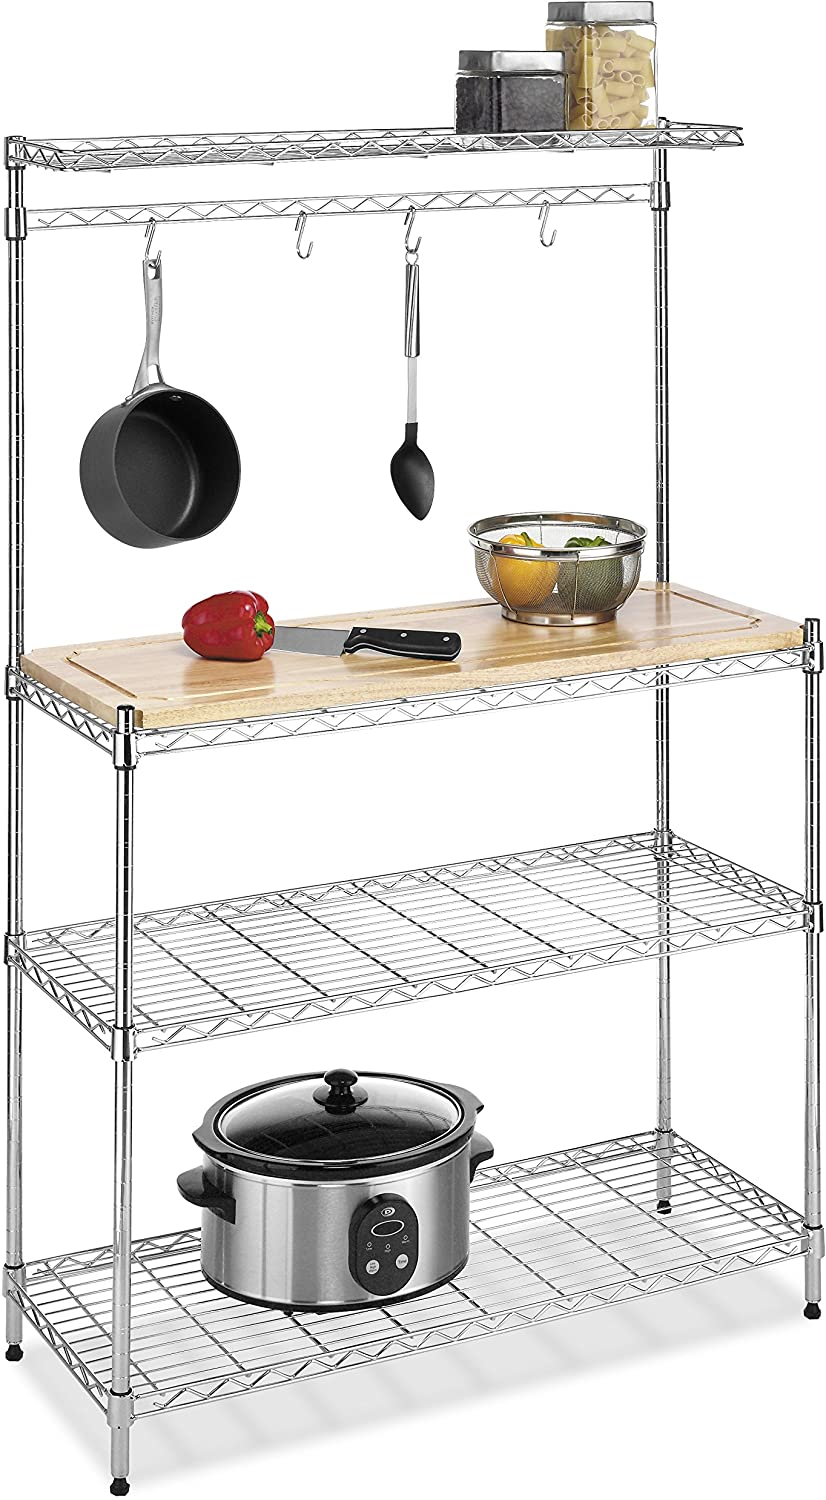 1. Whitmor Supreme Baker's Rack